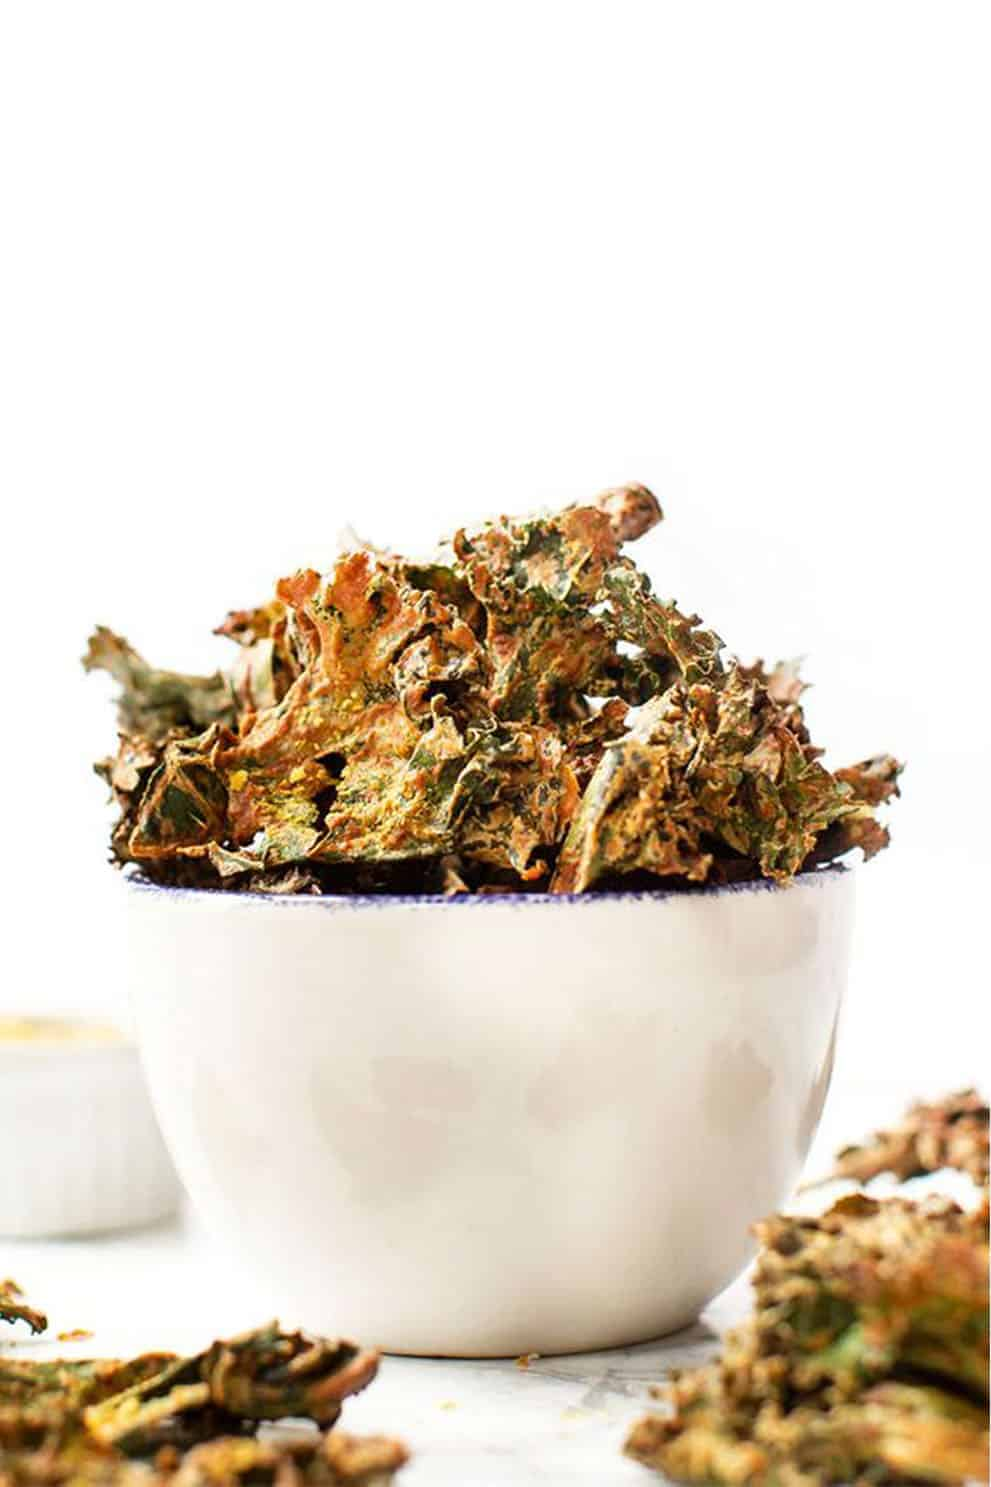 Vegan nacho kale chips in a white bowl over a white background - Simply Quinoa